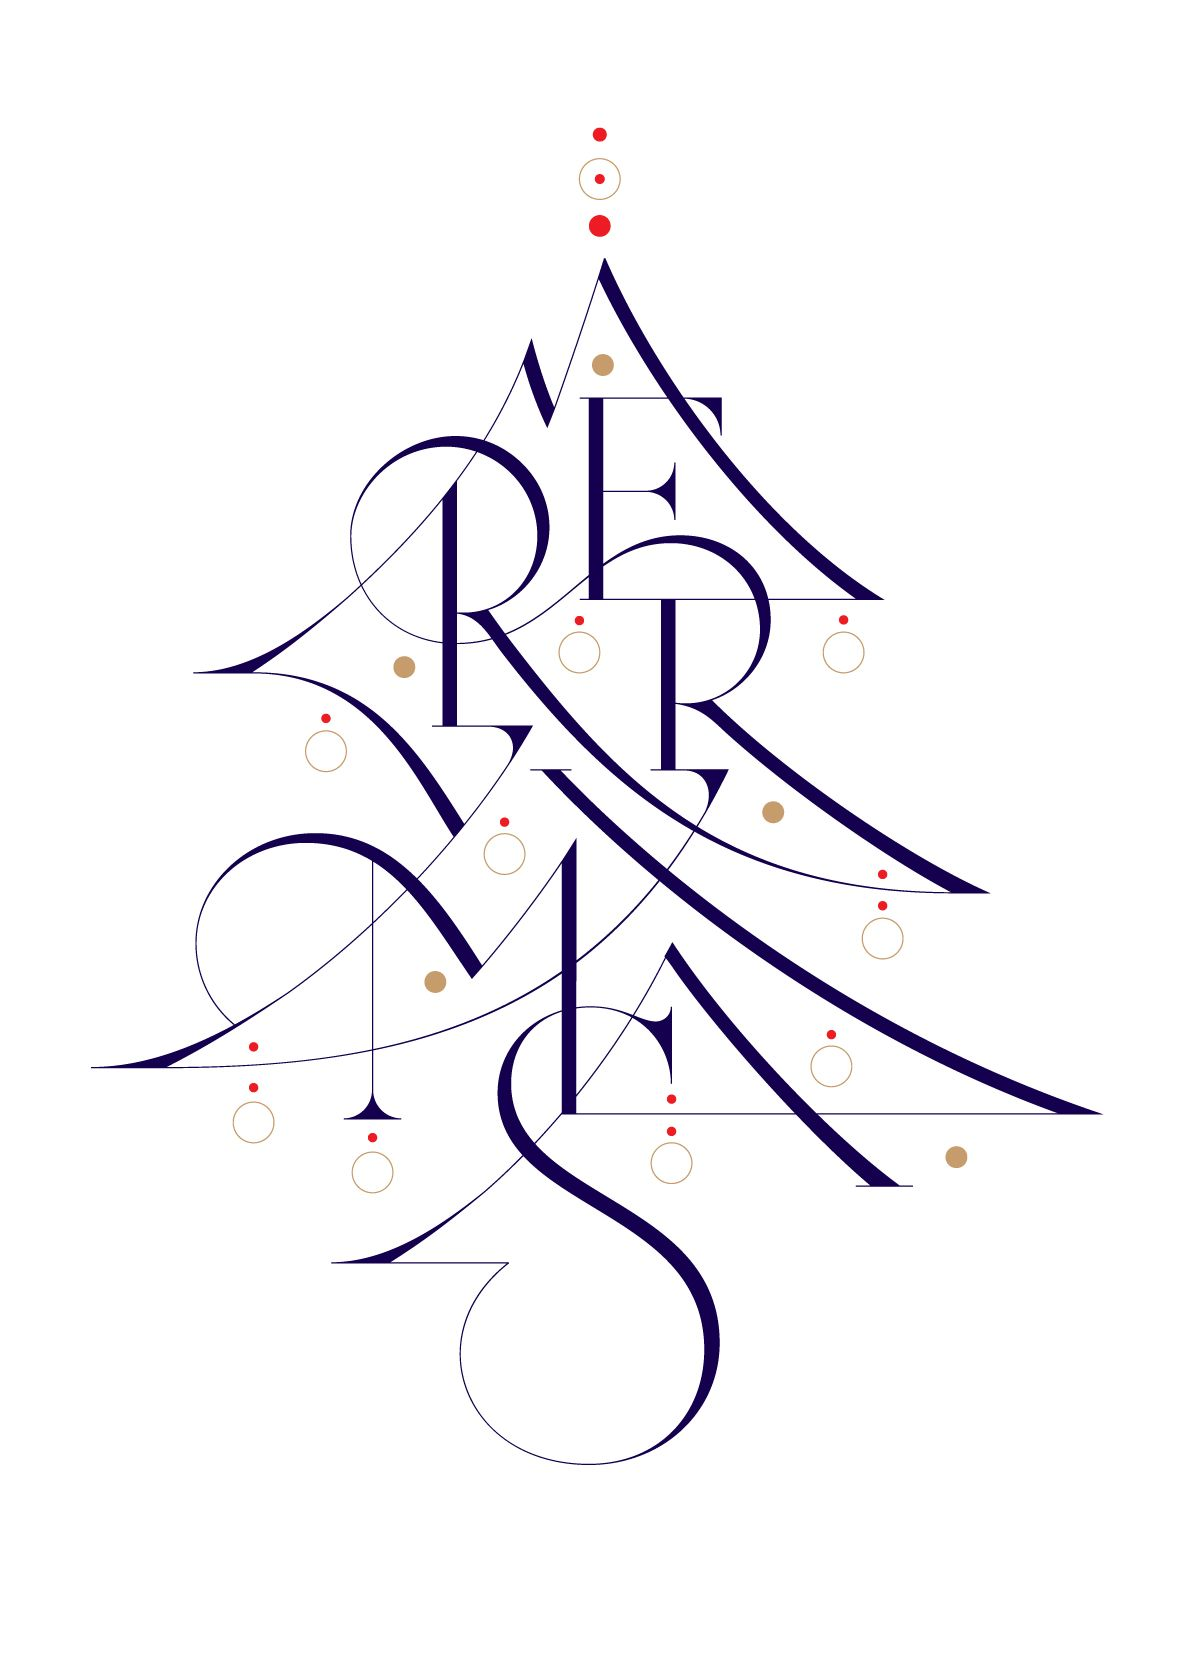 Esta imagen confunde? | Fuentes | Pinterest | Merry, Typography and ...